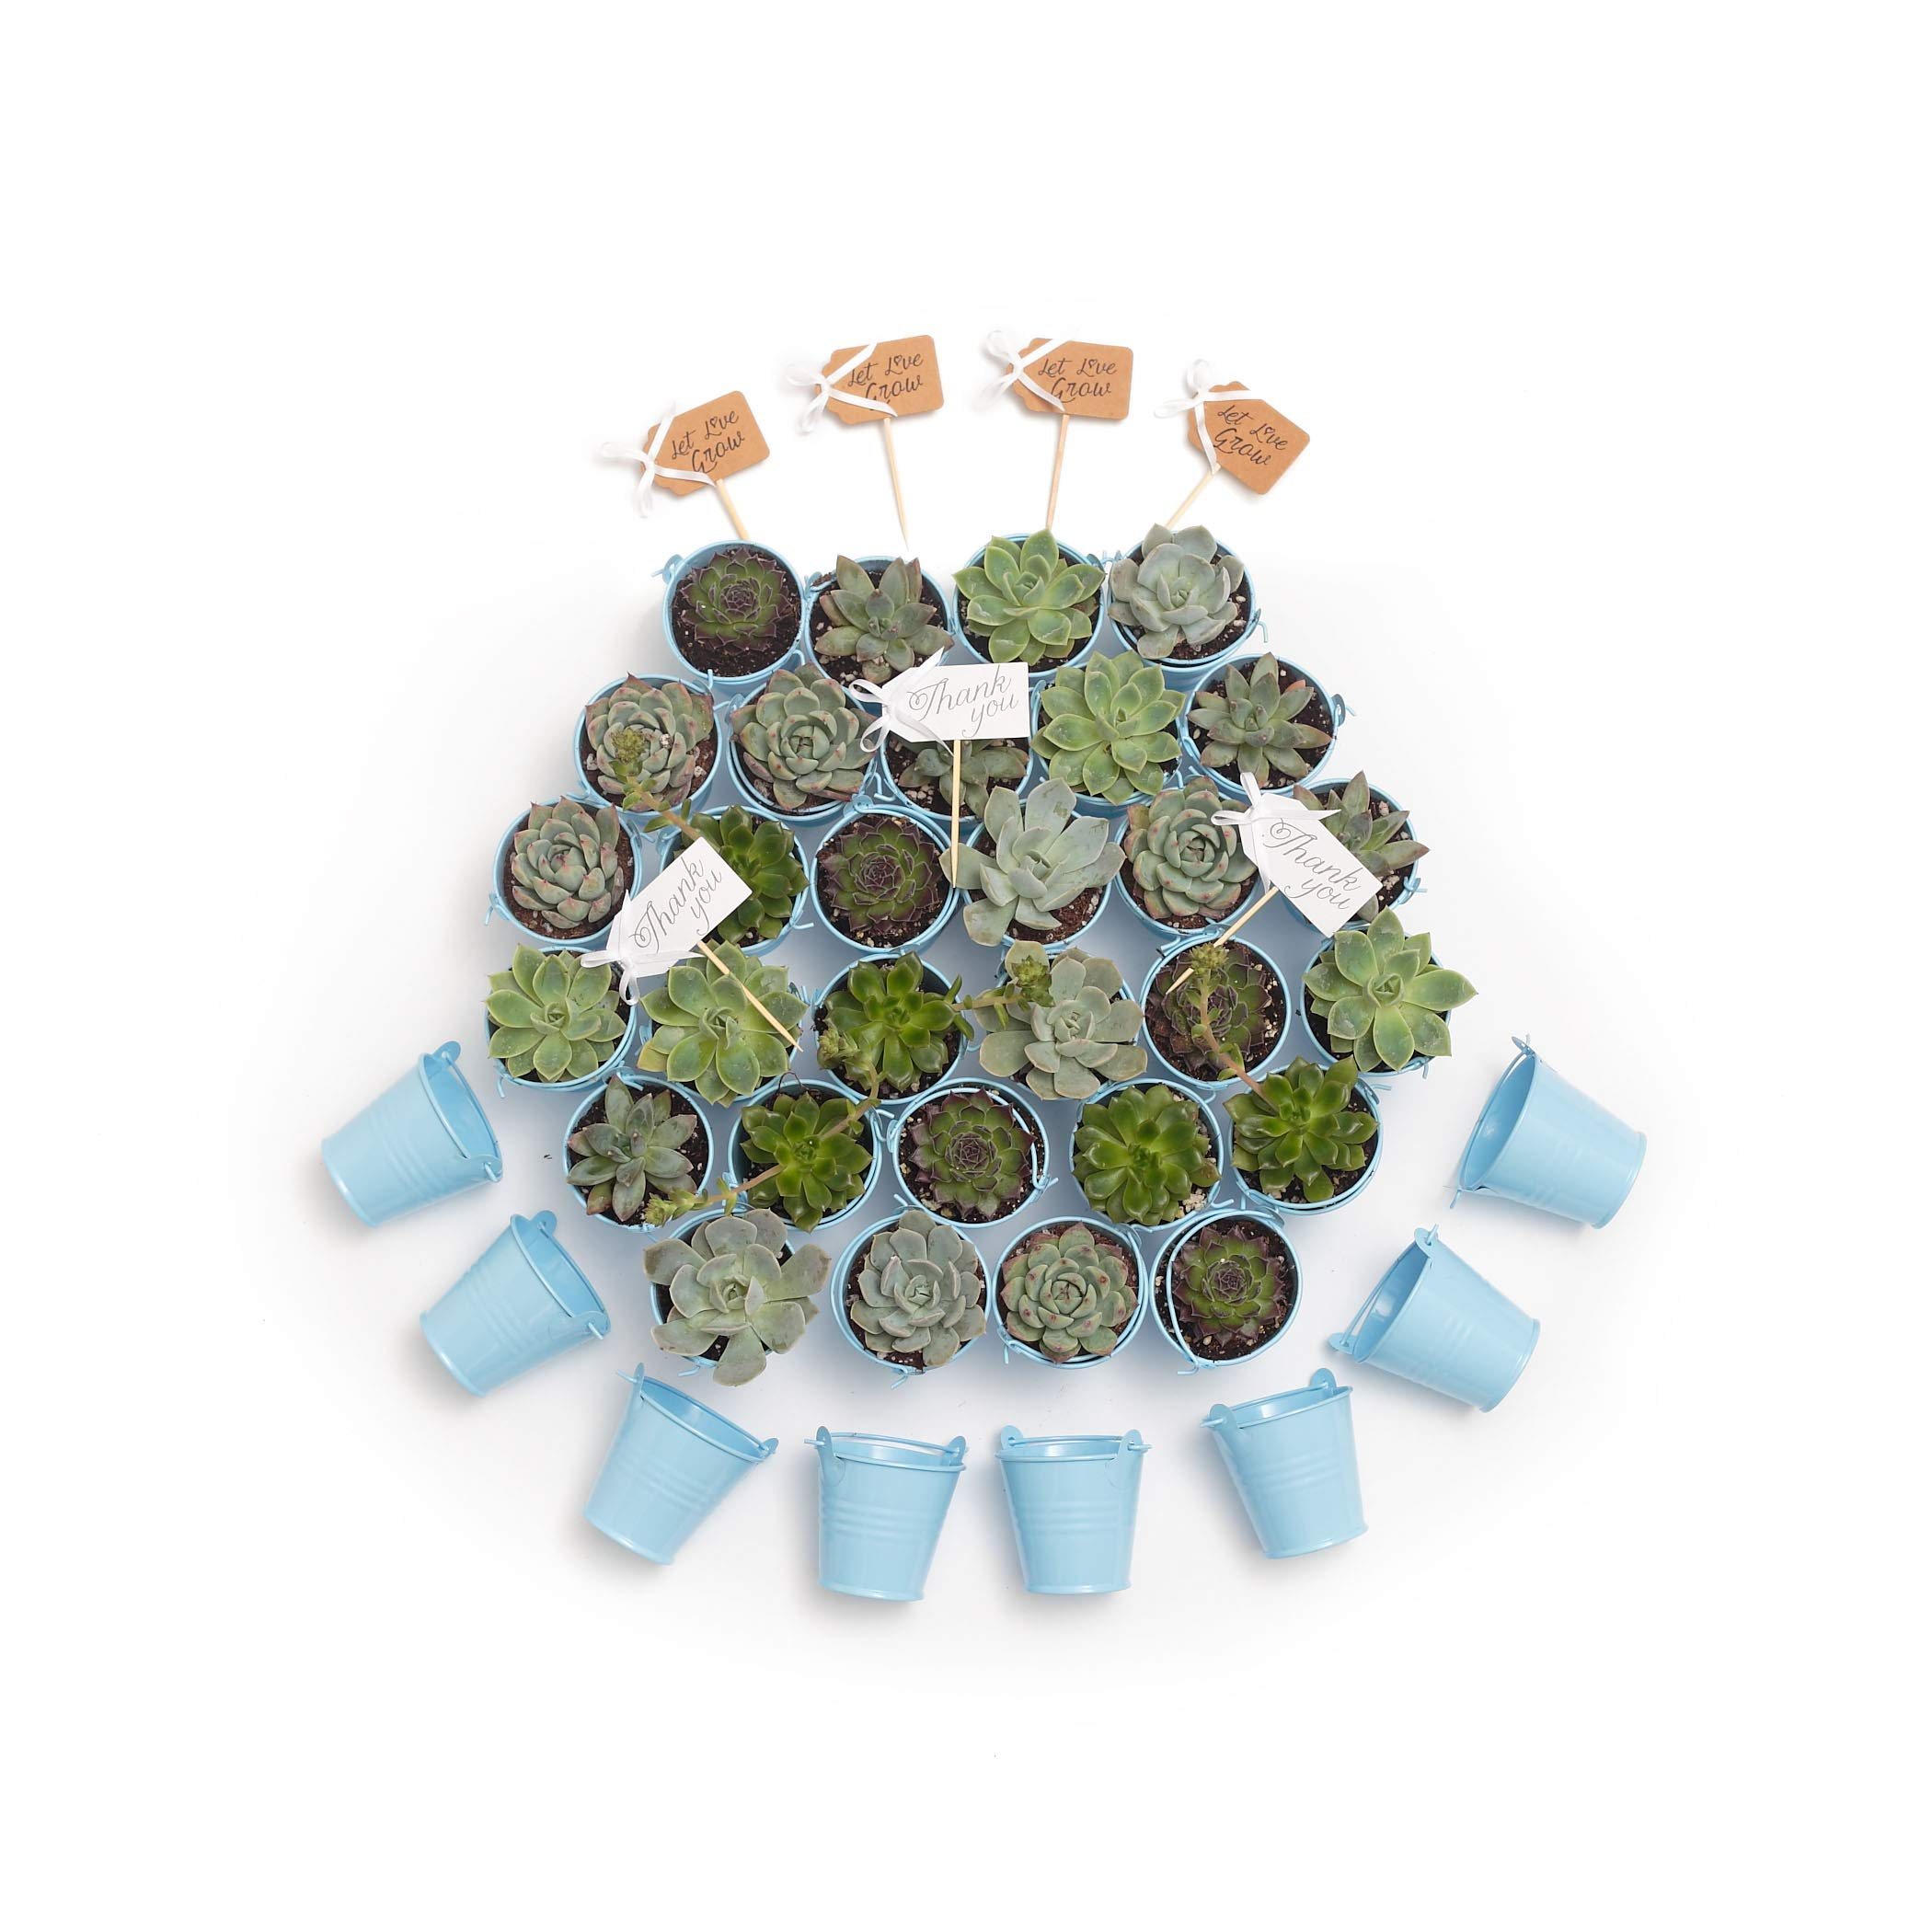 2 in. Wedding Event Rosette Succulents with Blue Metal Pails and Thank You Tags (30) by Succulent Source (Image #4)